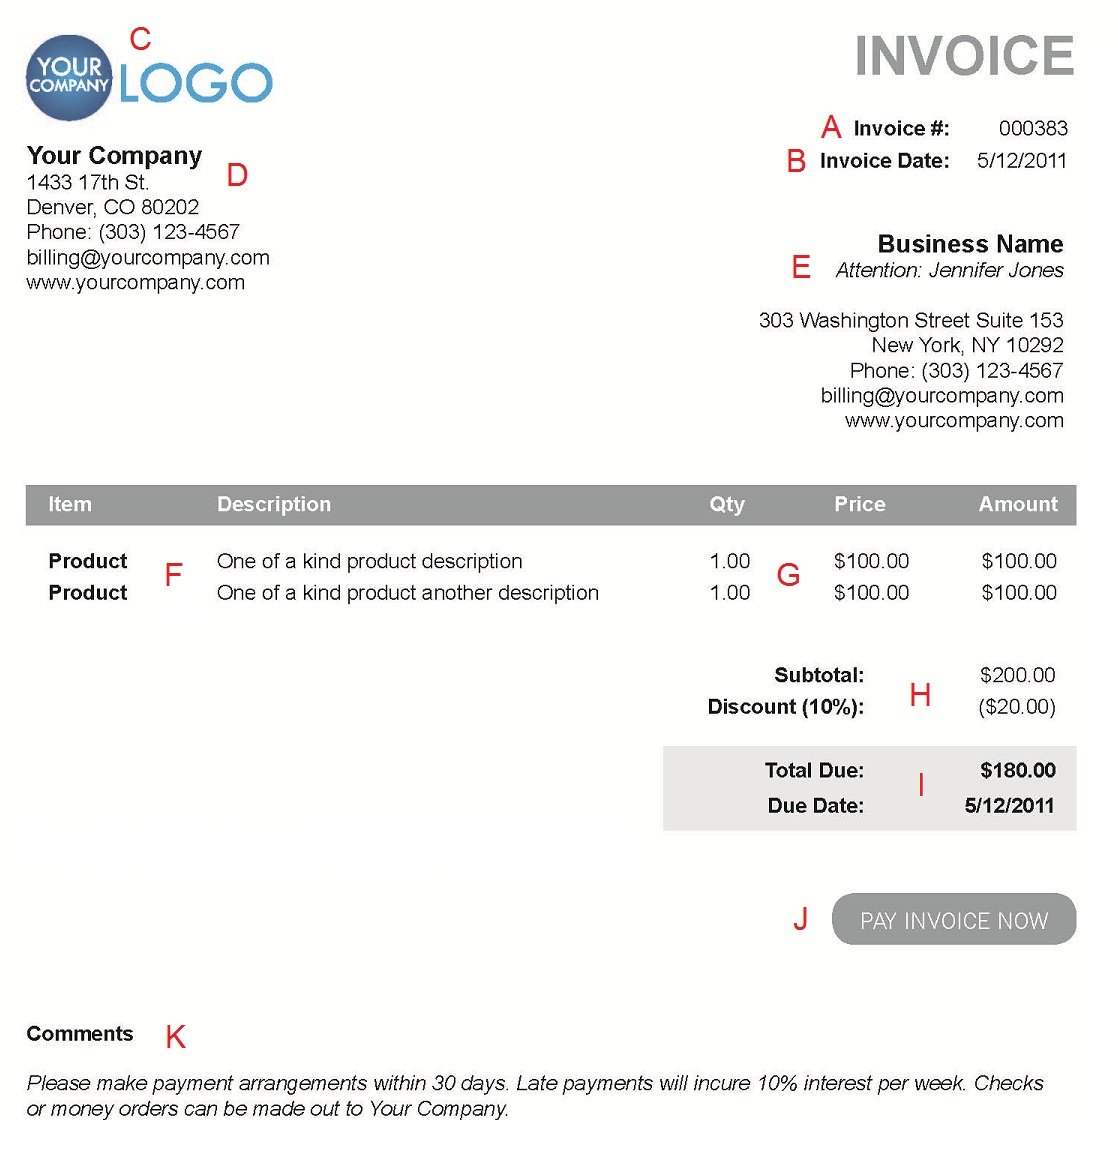 Usdgus  Marvellous The  Different Sections Of An Electronic Payment Invoice With Marvelous A  With Alluring Web Based Invoicing Also Express Invoice For Mac In Addition Sell Invoices And Pdf Invoice Maker As Well As Emailing Invoices Additionally Microsoft Excel Invoice From Paysimplecom With Usdgus  Marvelous The  Different Sections Of An Electronic Payment Invoice With Alluring A  And Marvellous Web Based Invoicing Also Express Invoice For Mac In Addition Sell Invoices From Paysimplecom